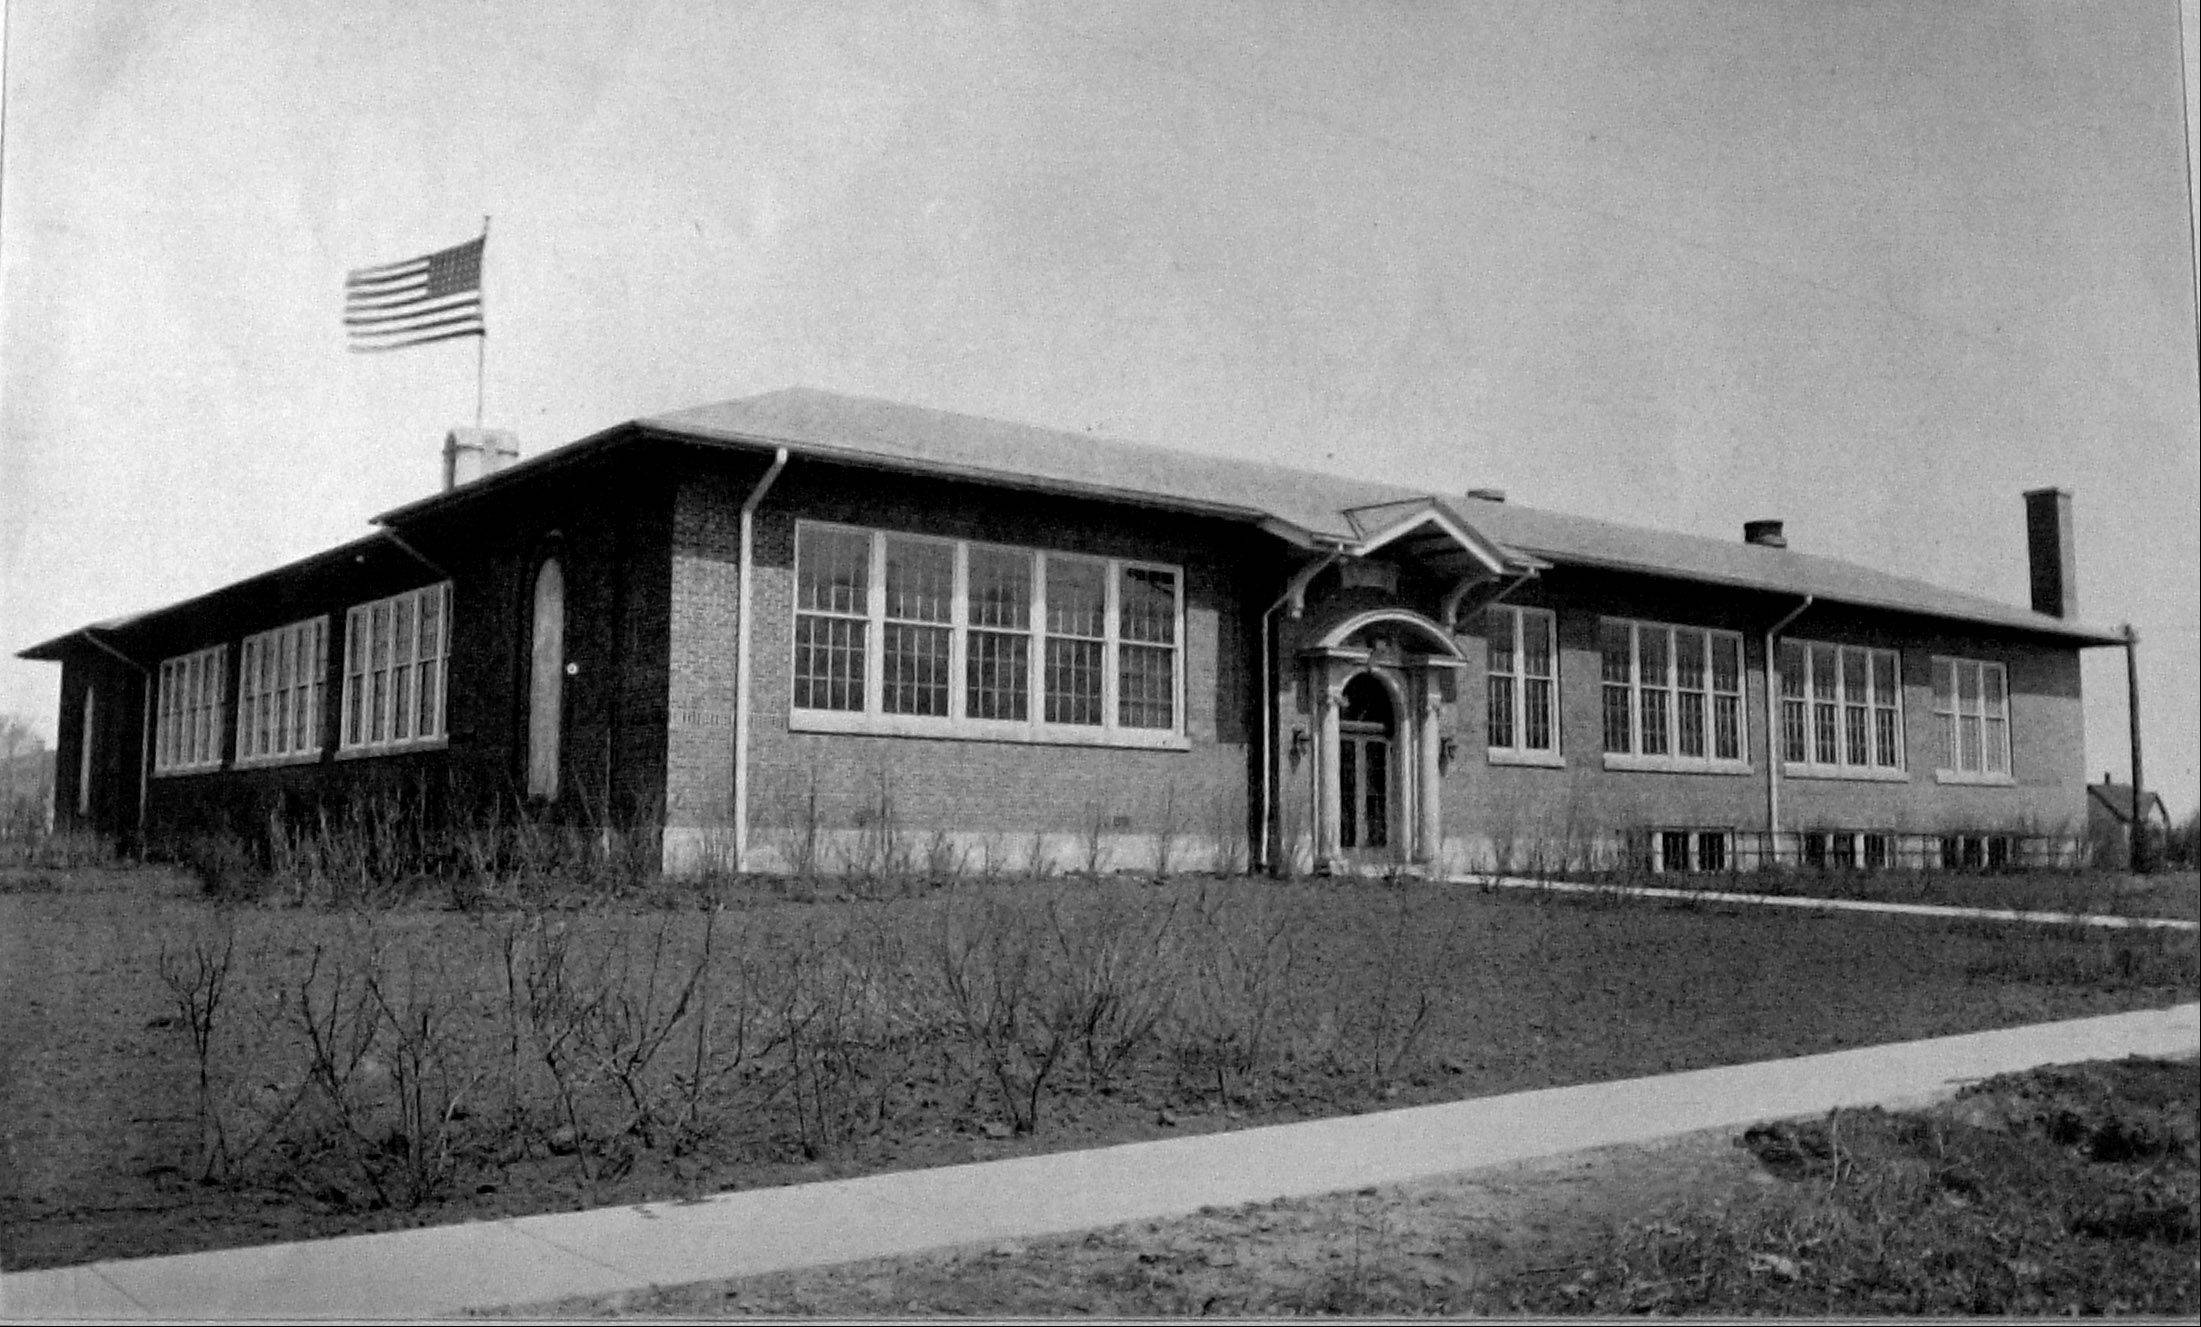 Libertyville Township High School was built in 1916.